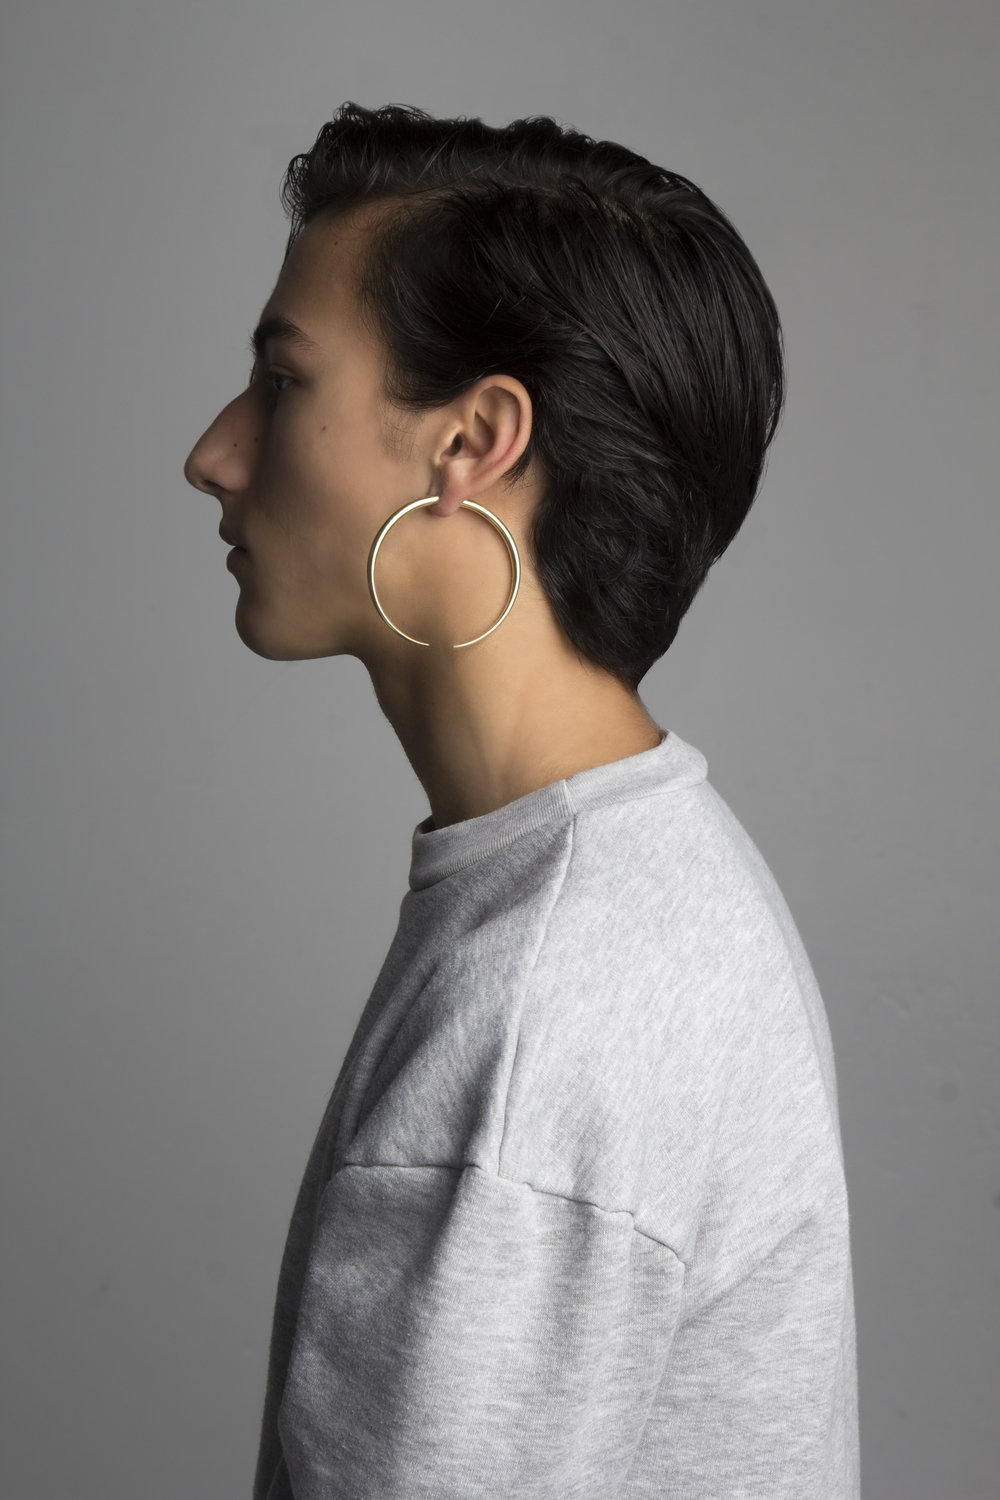 Jojo Ross Sculpted Sweatshirt  With  Meadowlark  earring